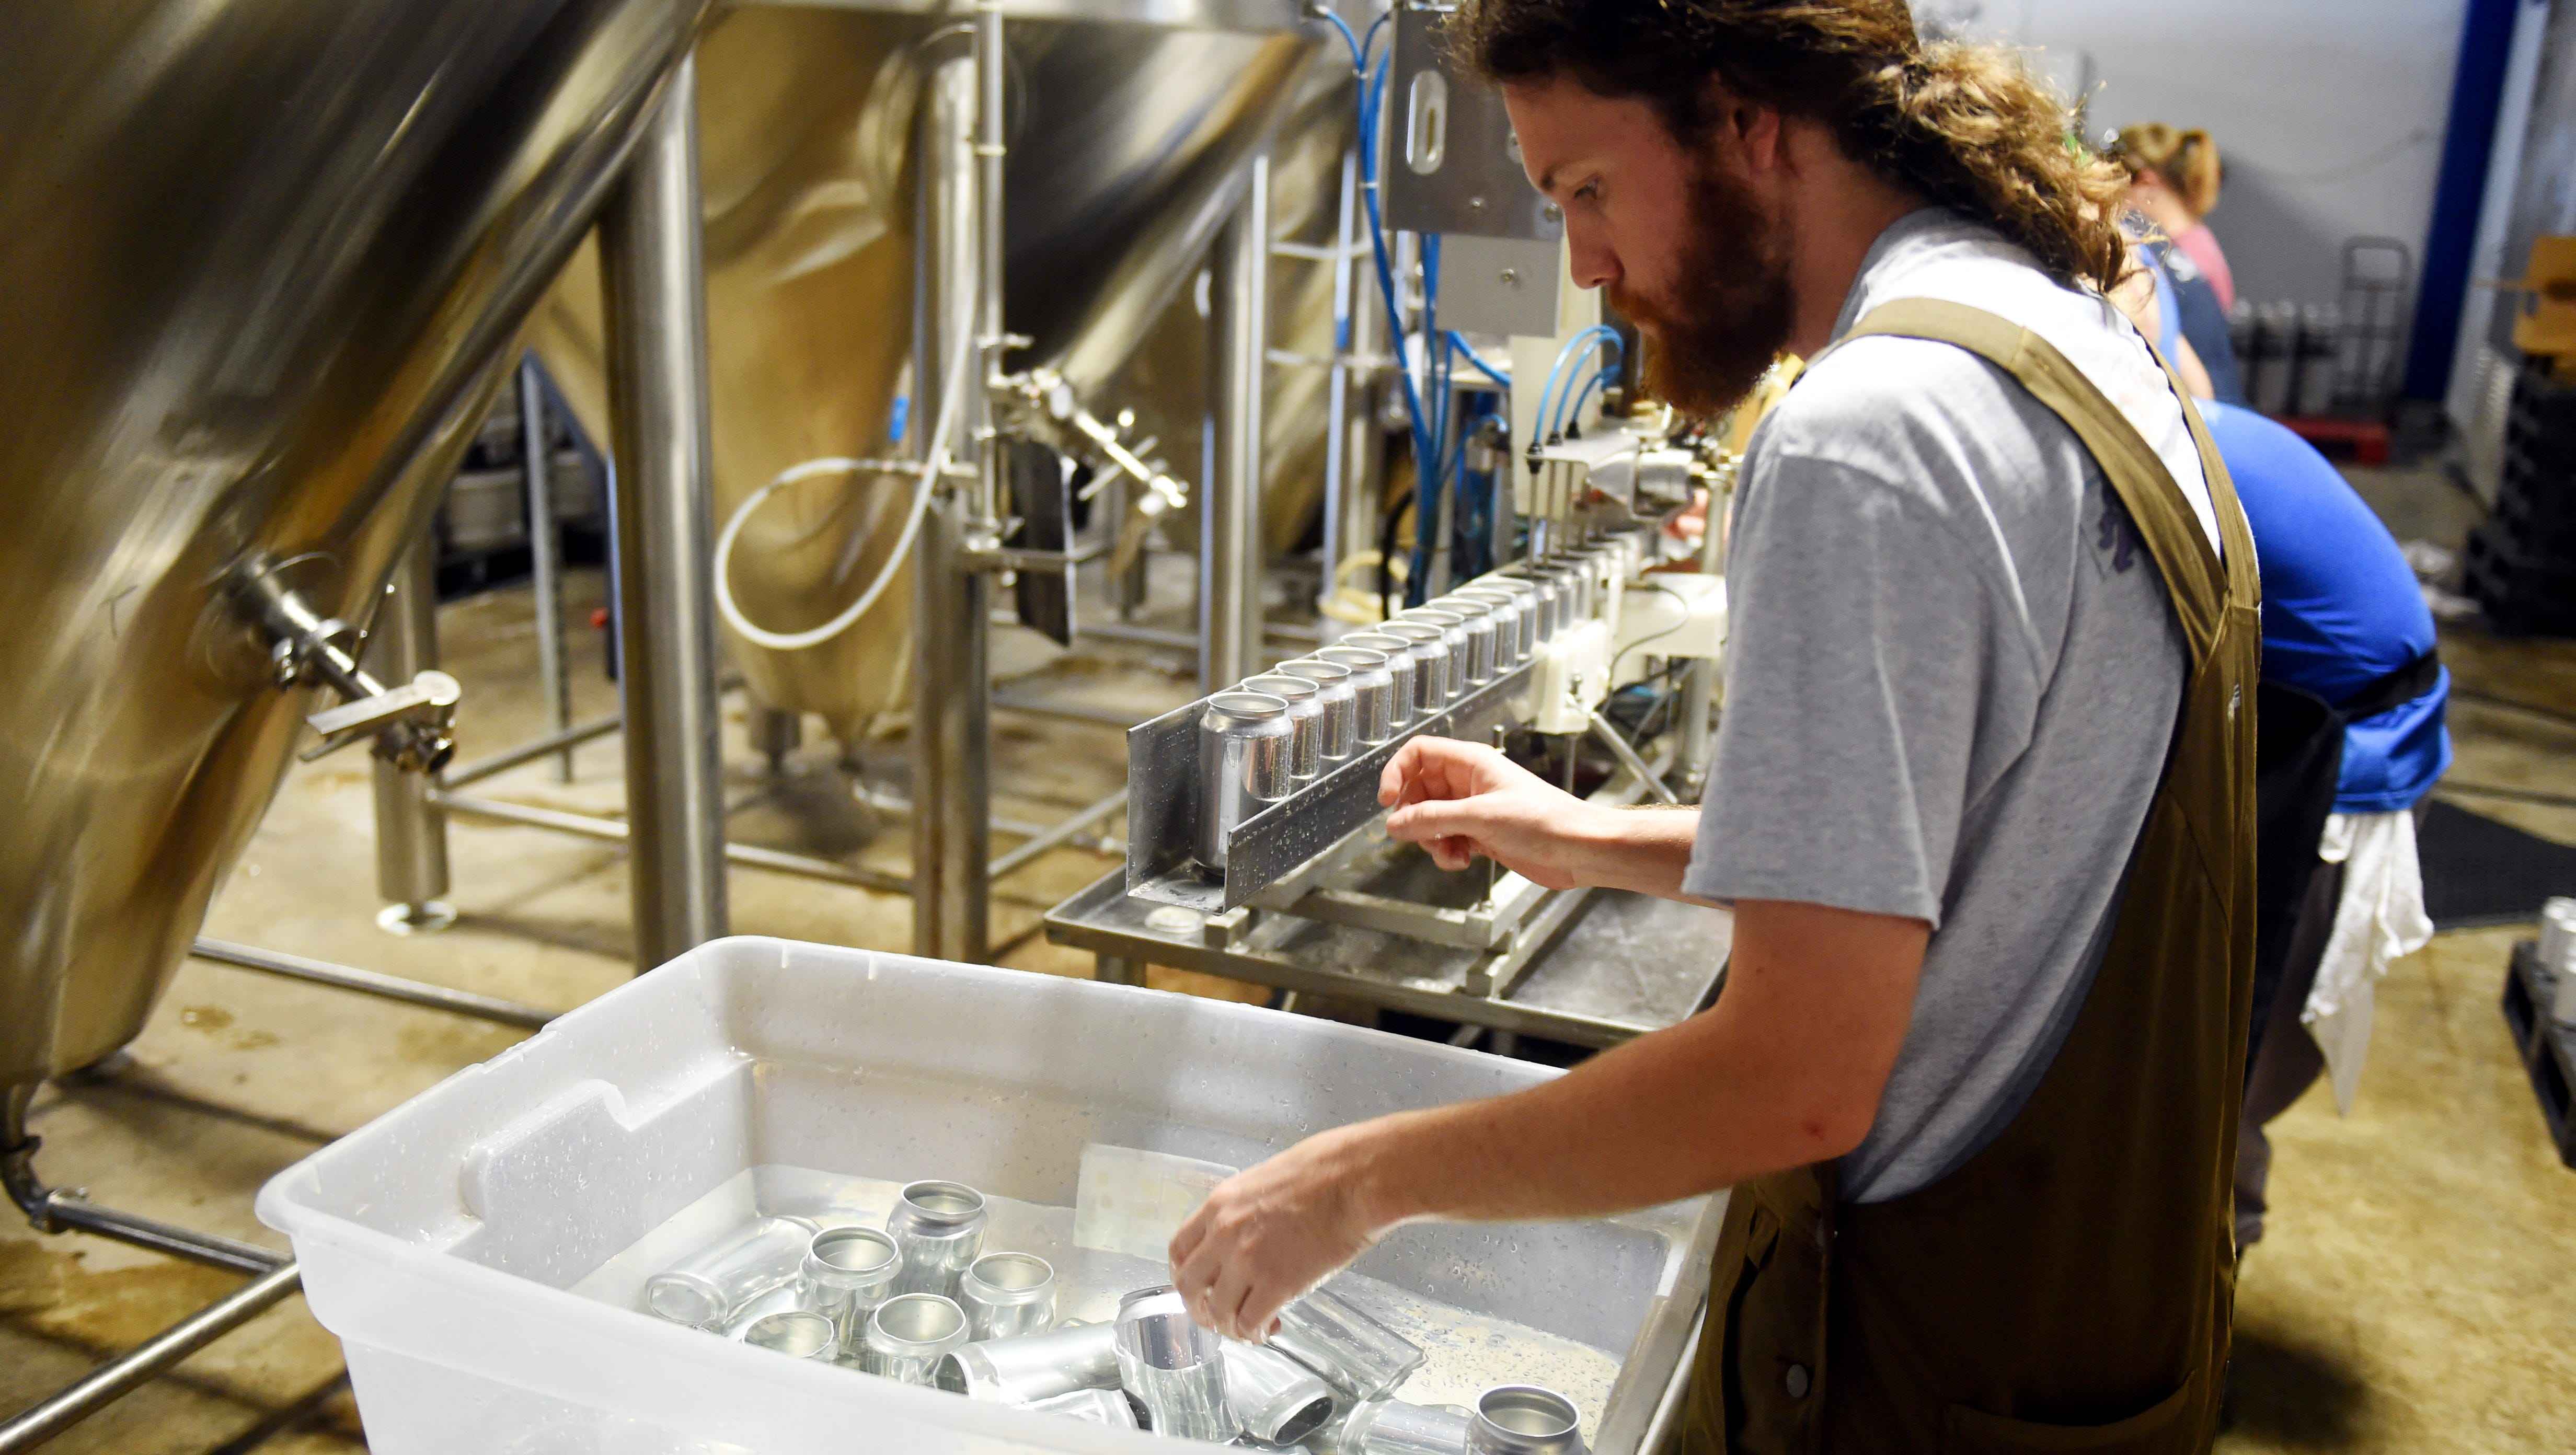 On tap: Sailfish Brewing expands to Vero Beach